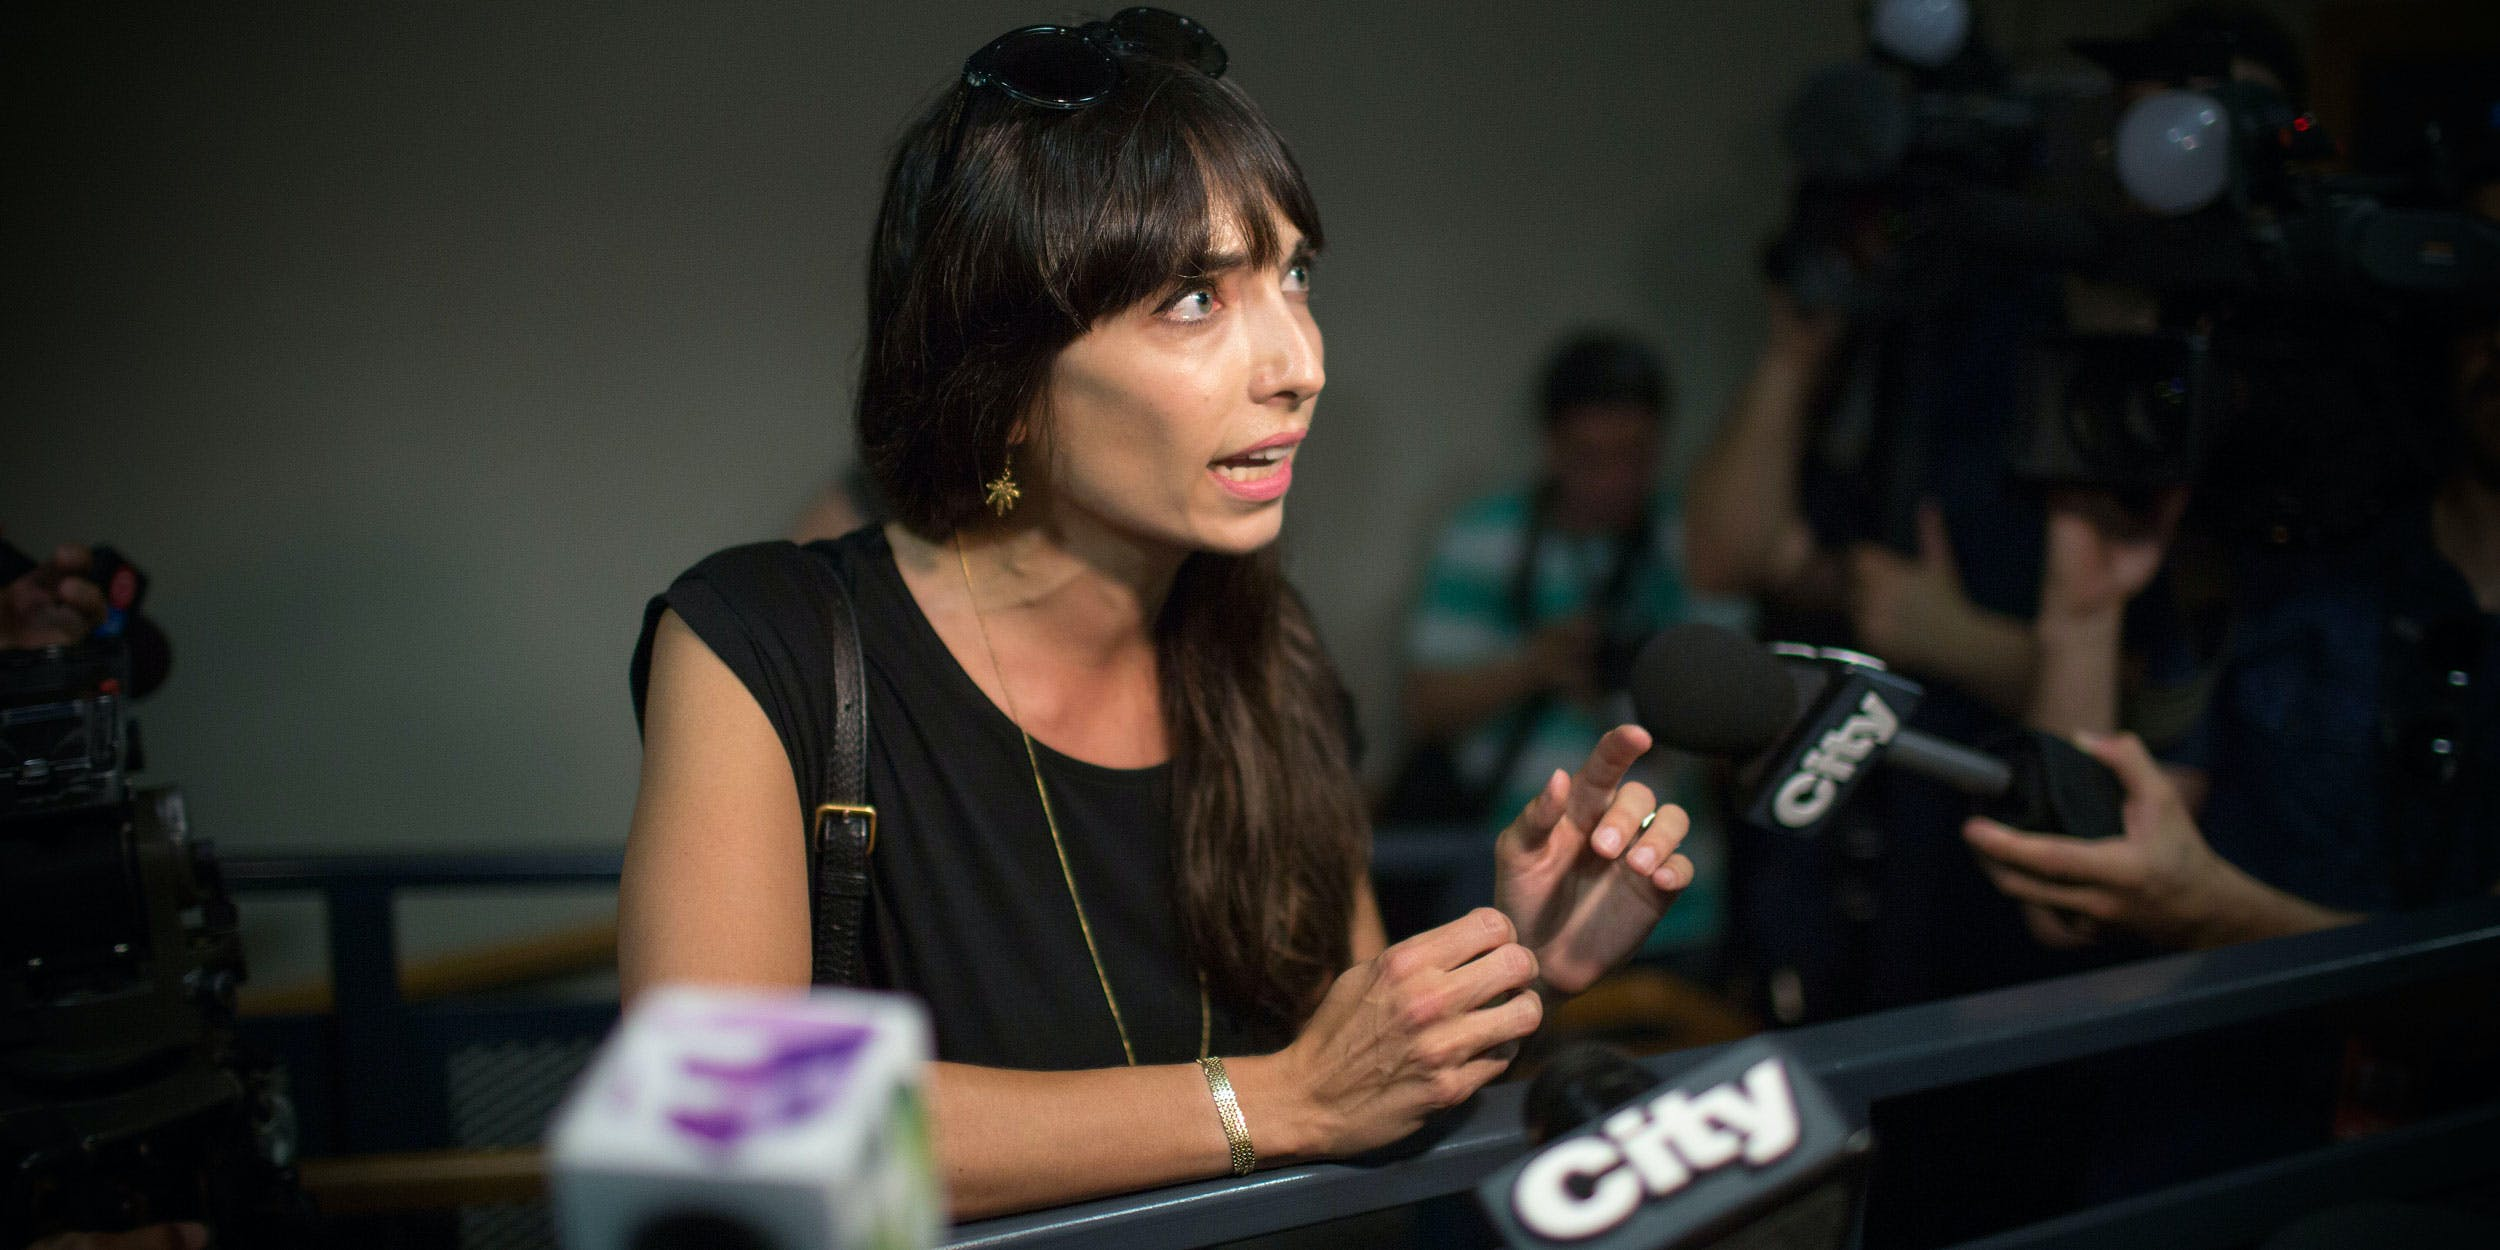 Jodie Emery speaks about how she has a problem with Canada's legal cannabis act